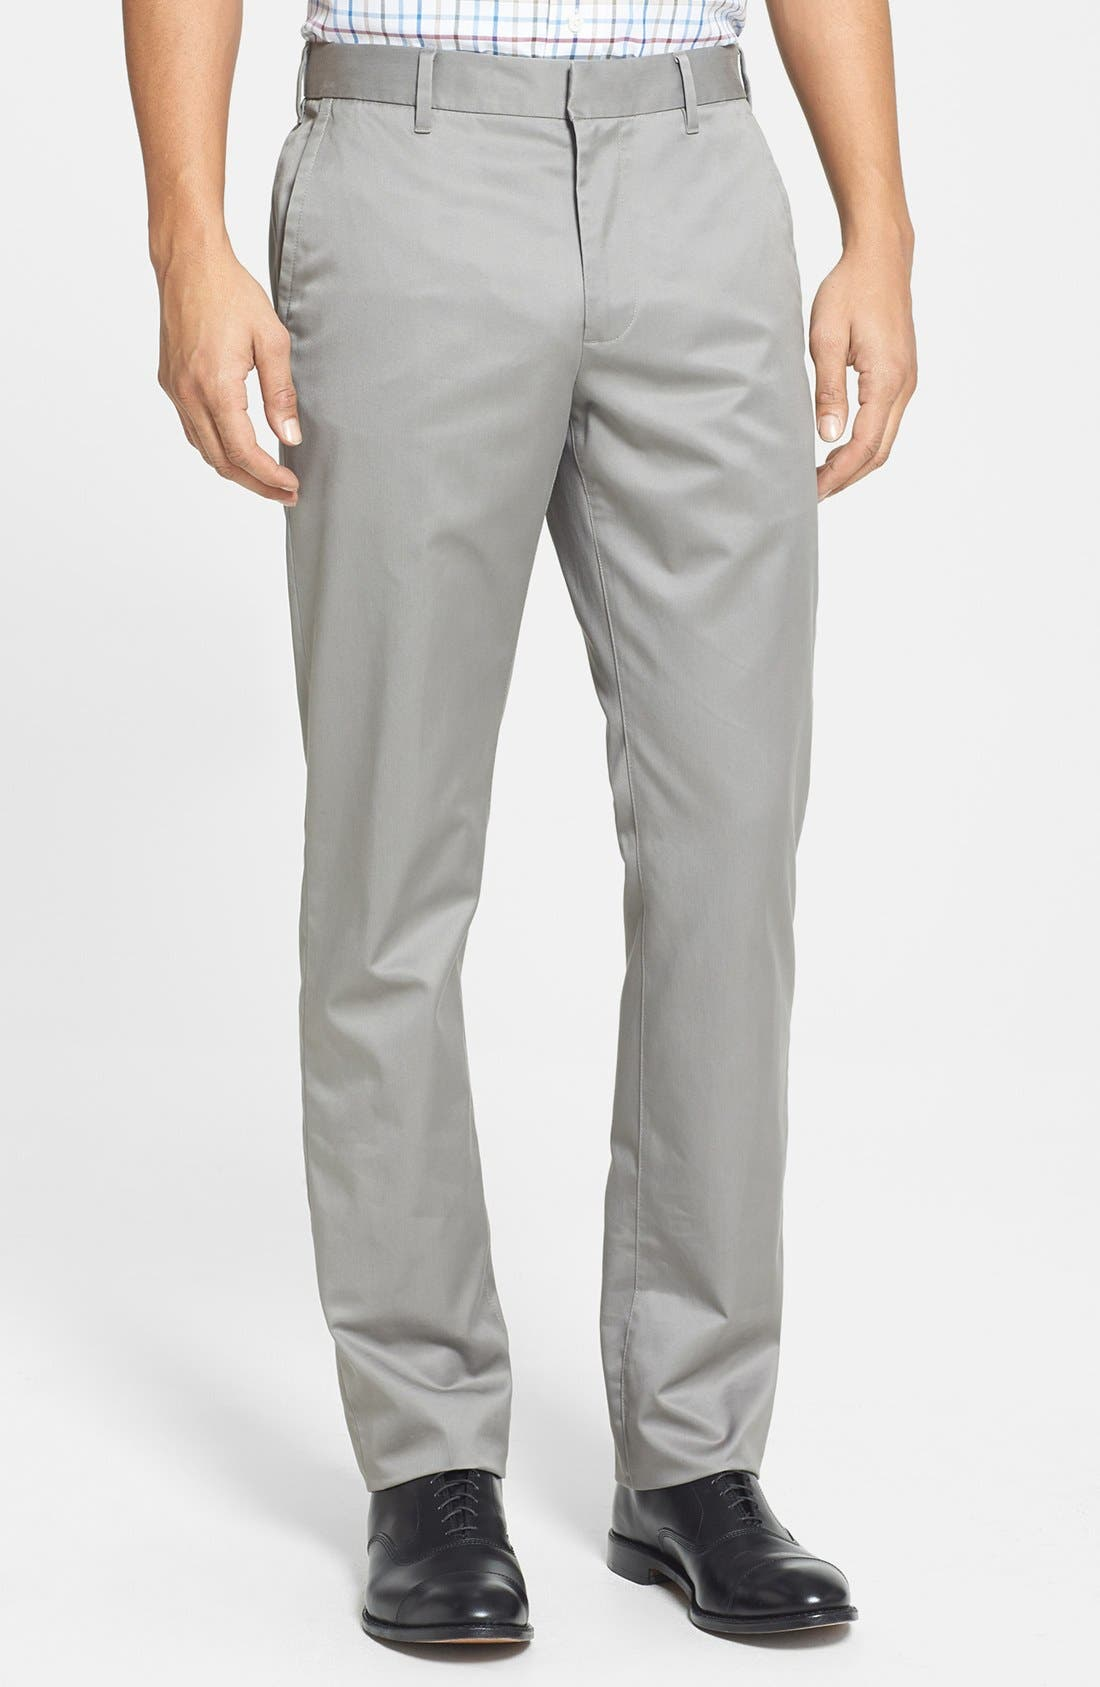 Main Image - Bonobos 'Weekday Warriors' Non-Iron Slim Fit Cotton Chinos